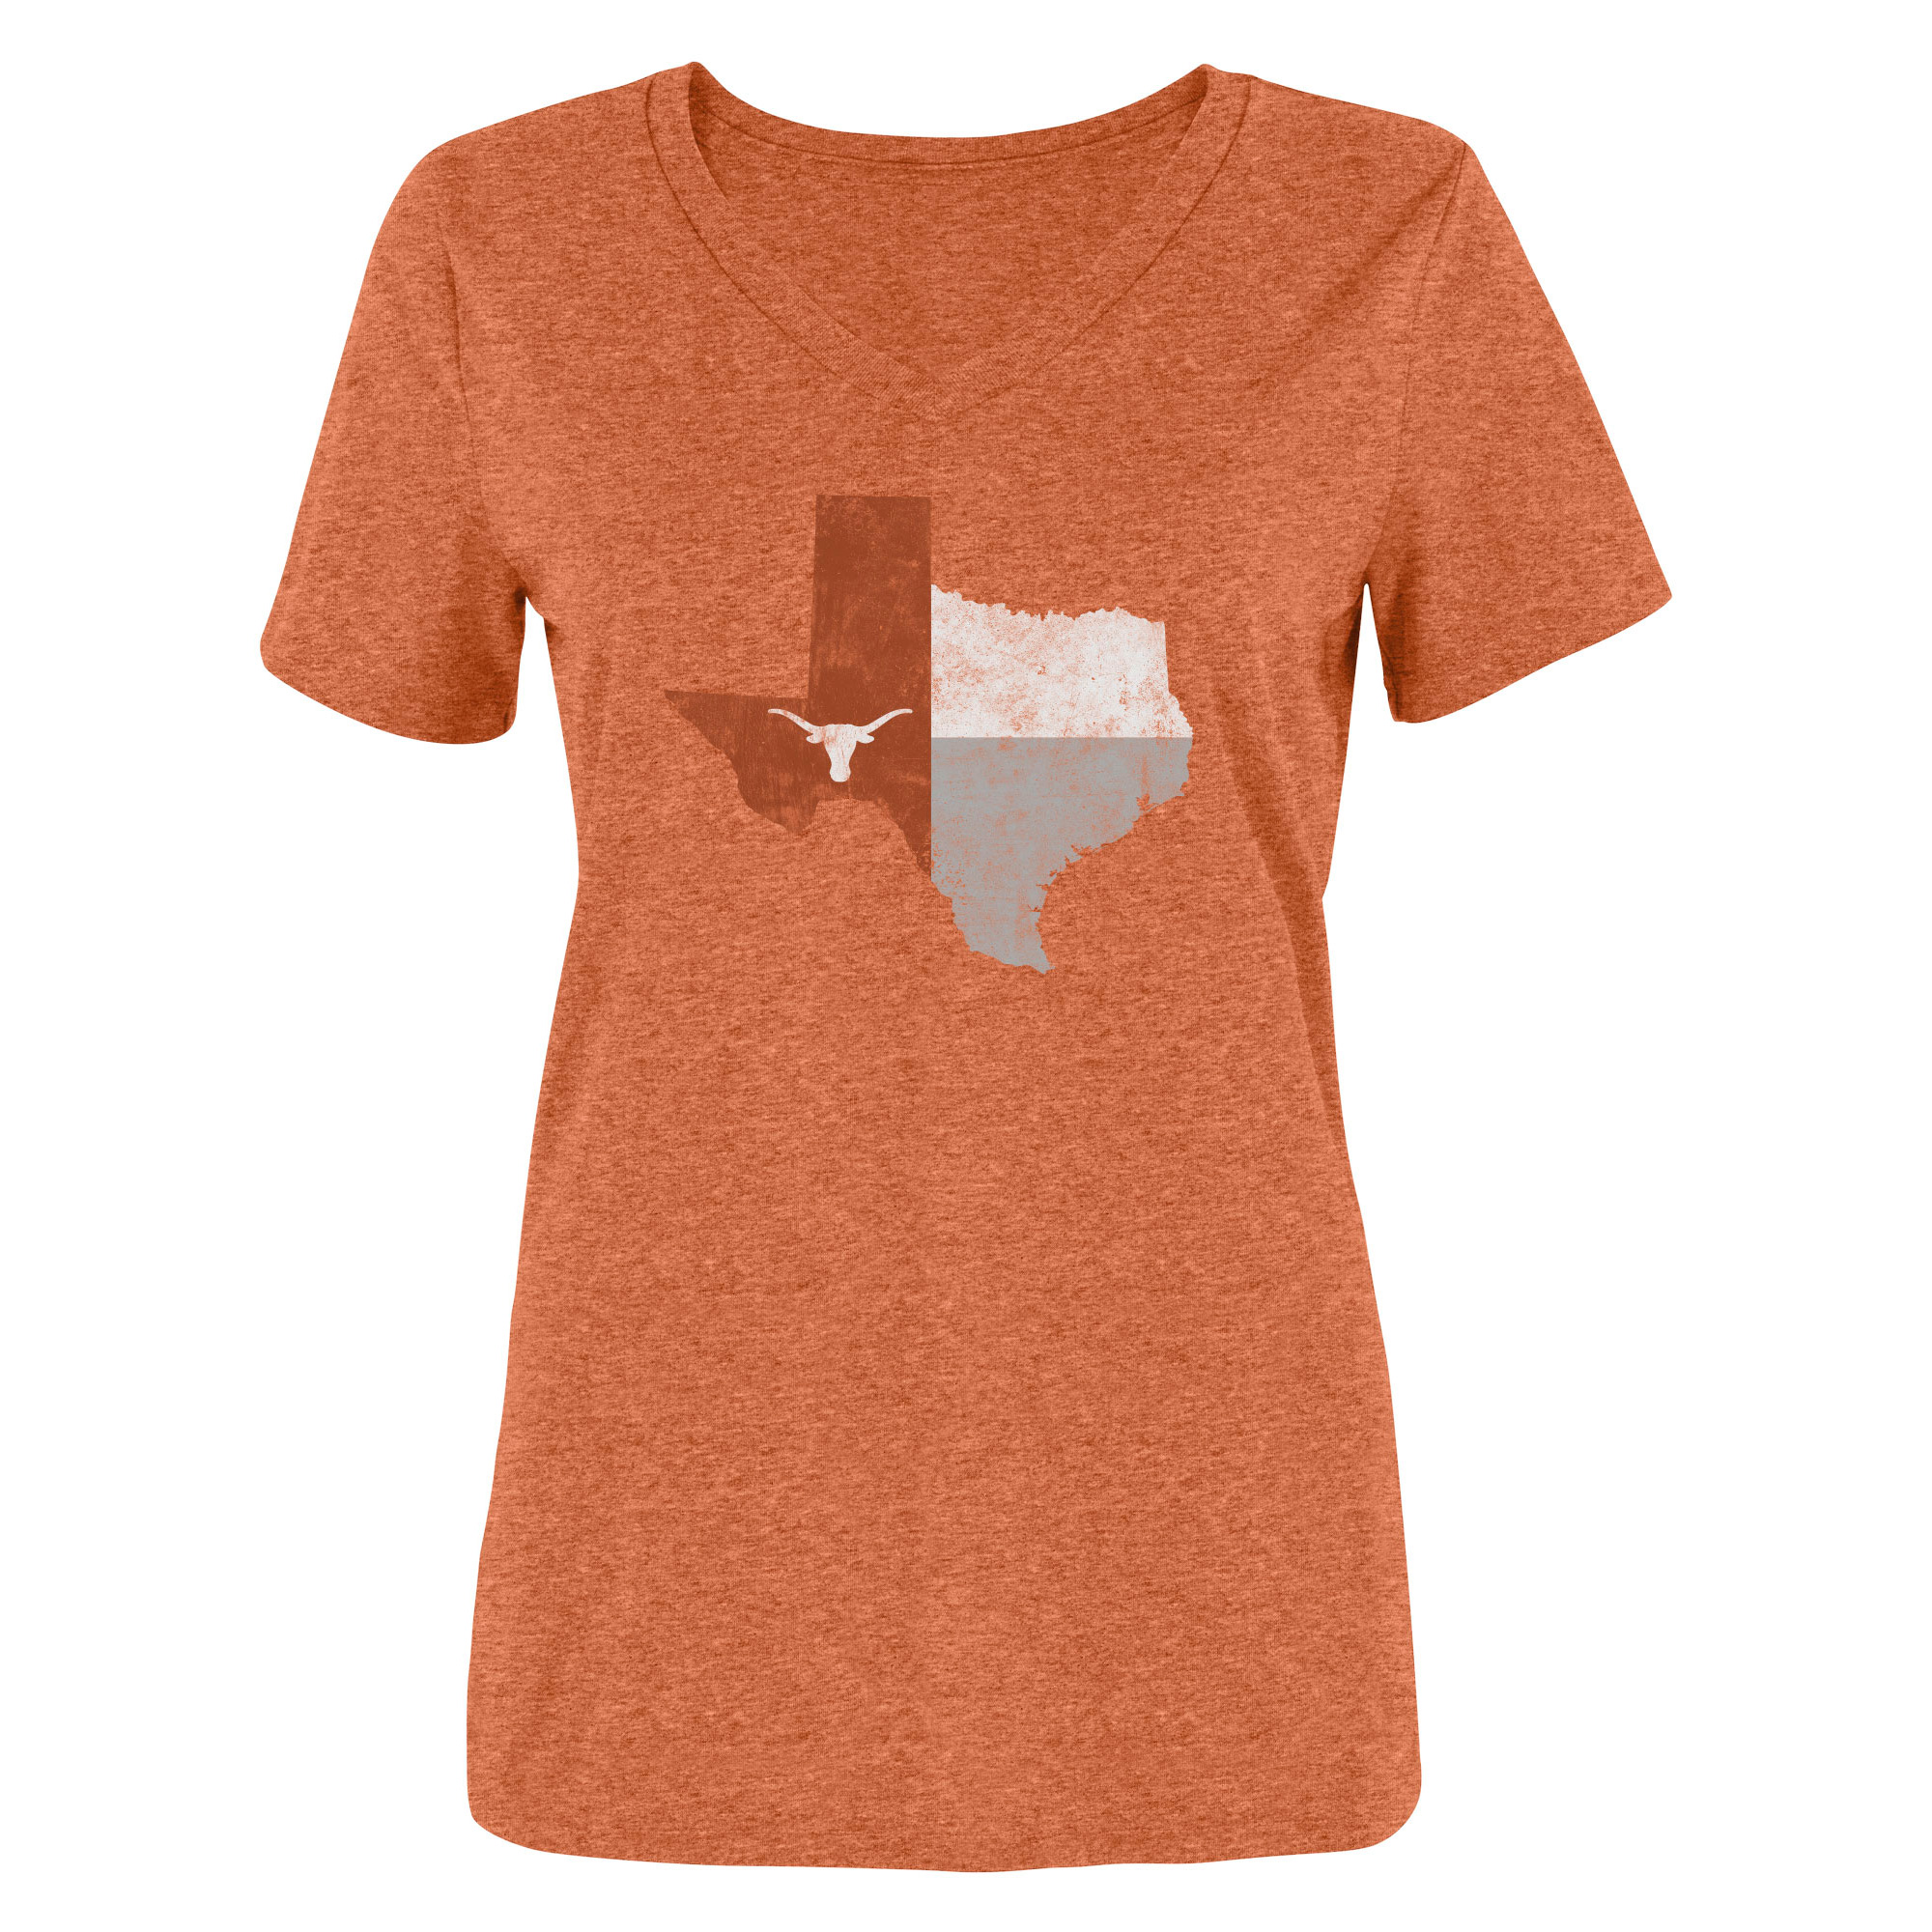 Women's Heathered Texas Orange Texas Longhorns State V-Neck T-Shirt